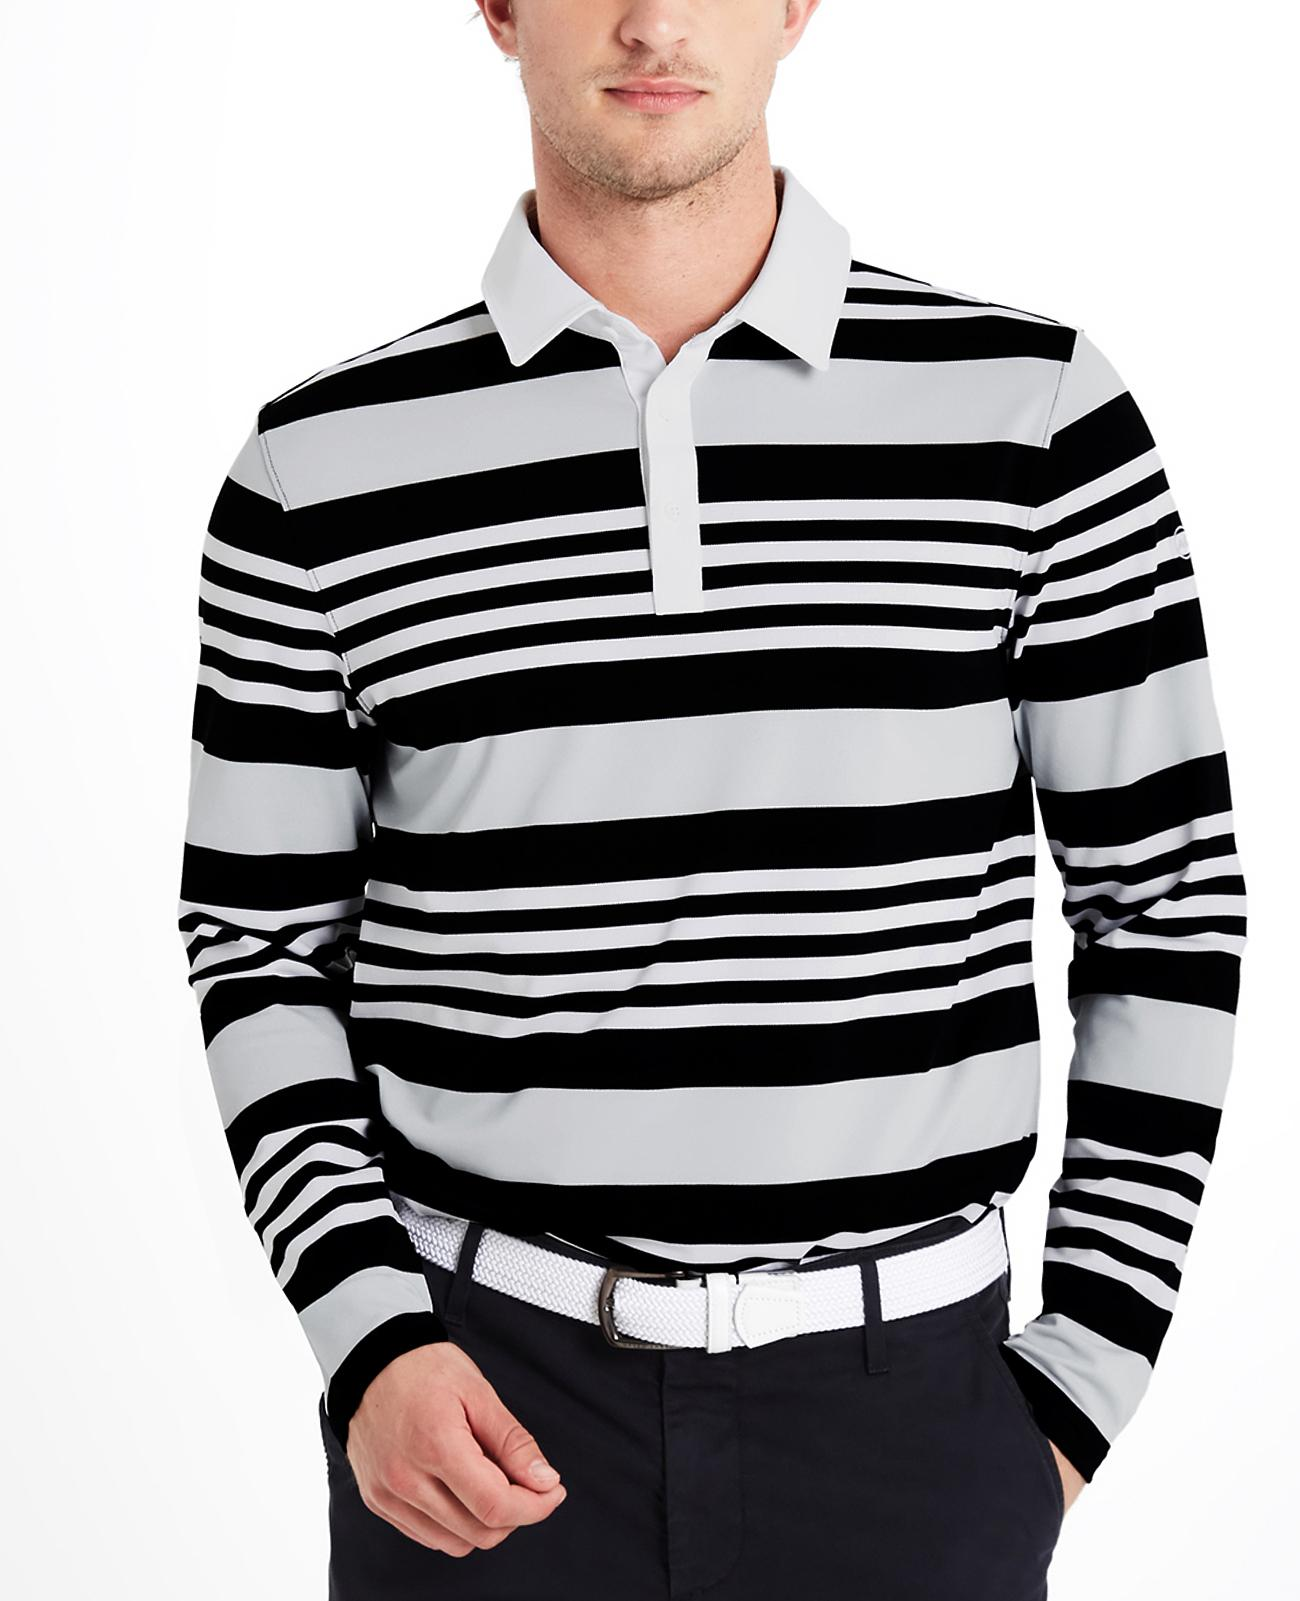 The Benson Stripe Polo